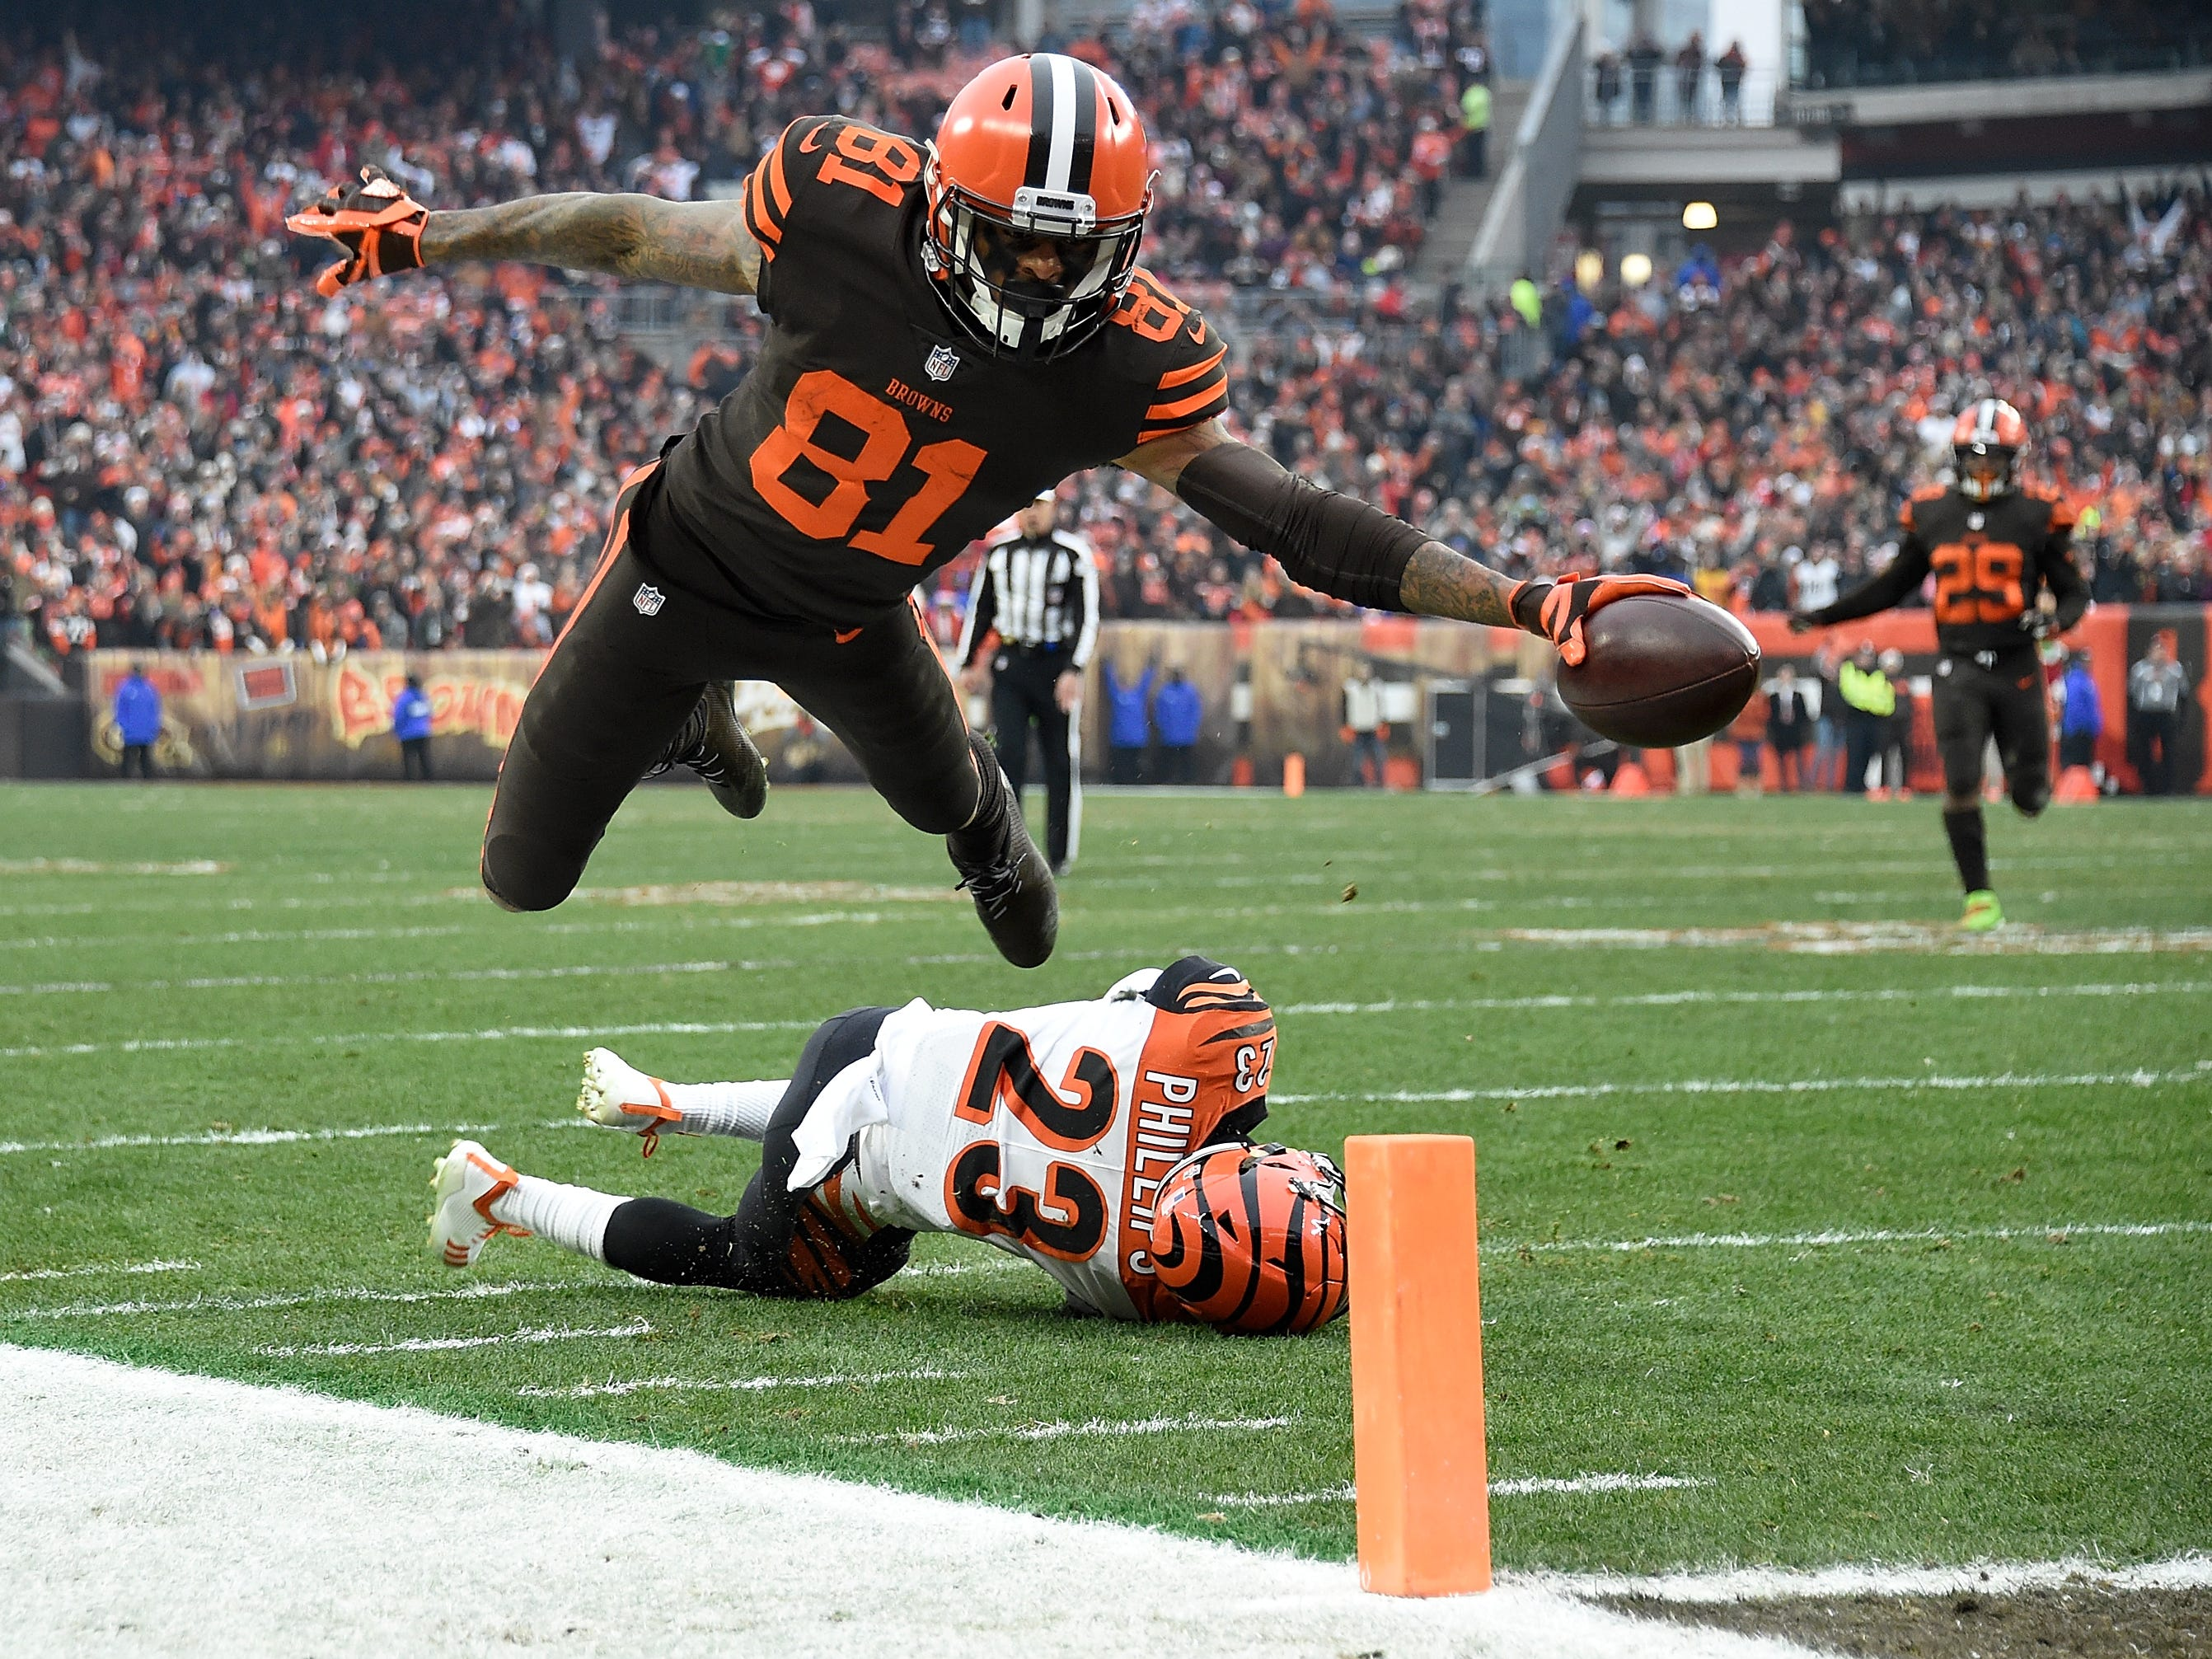 Week 16: Cleveland Browns WR Rashard Higgins dives for a touchdown against the Cincinnati Bengals at FirstEnergy Stadium. The Browns won the game, 26-18.